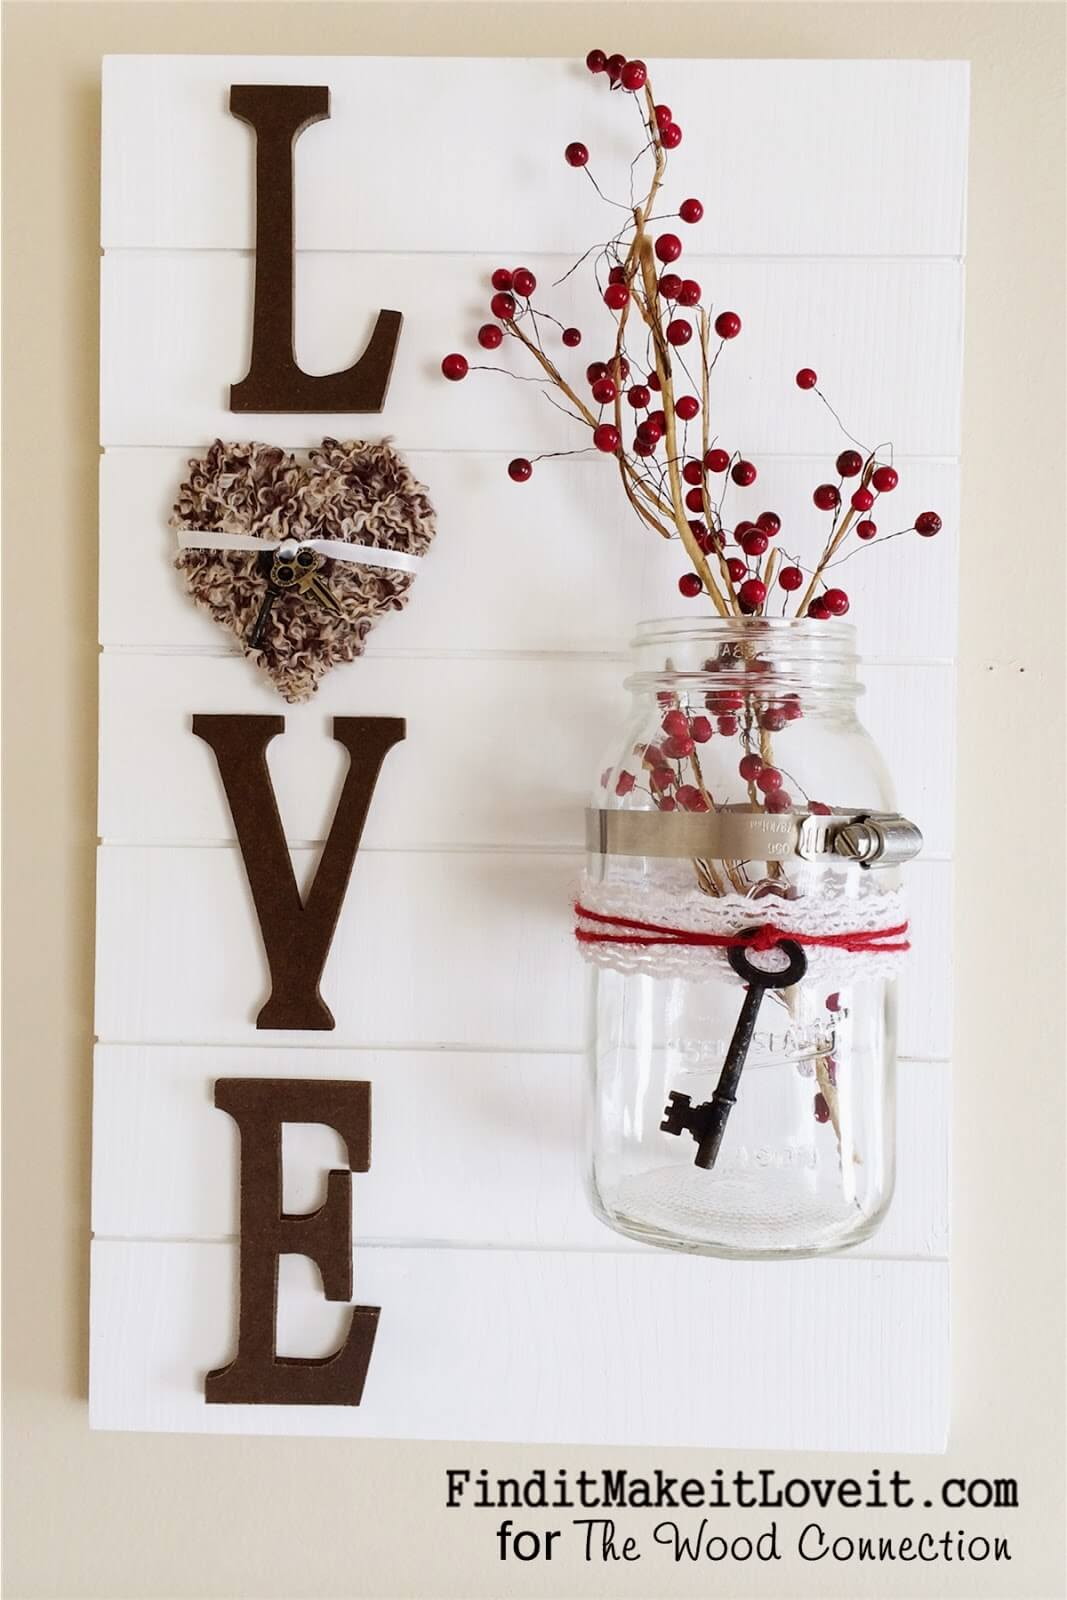 Mason Jar Wall Decor How To : Best mason jar wall decor ideas and designs for